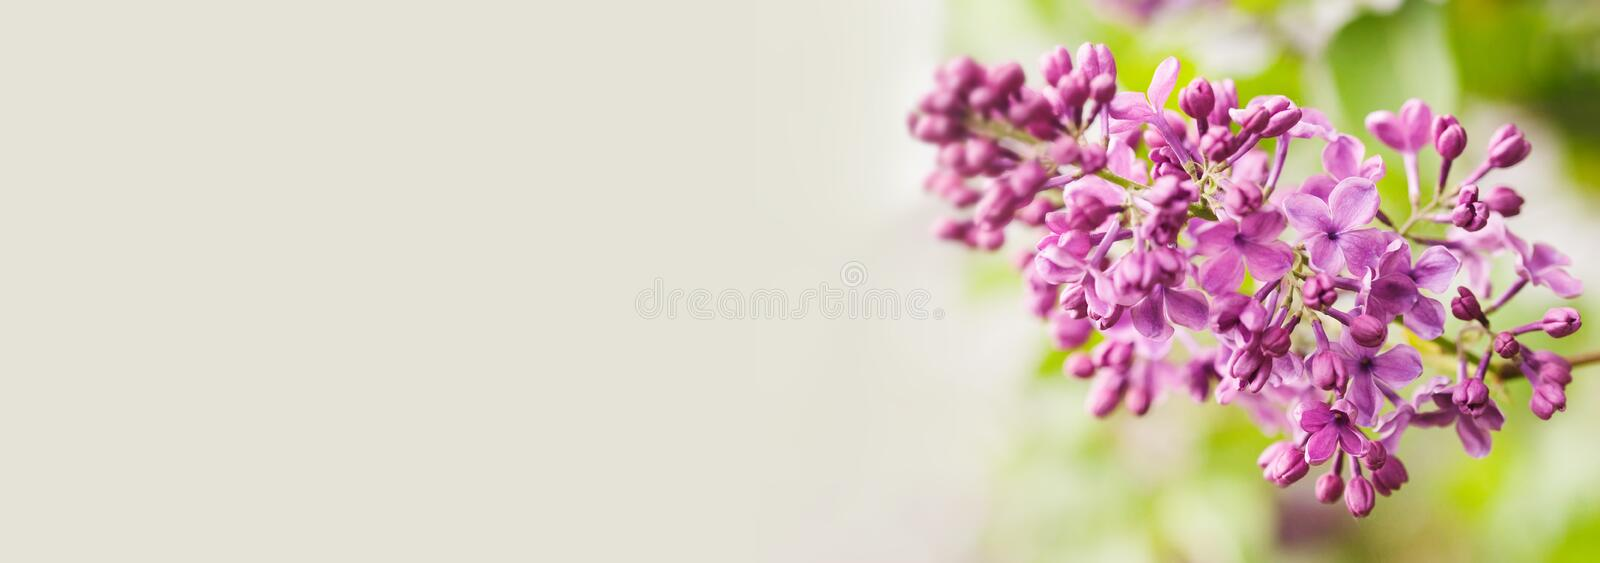 Macro view blossoming Syringa lilac bush. Springtime landscape with bunch of violet flowers. lilacs blooming plants royalty free stock photos